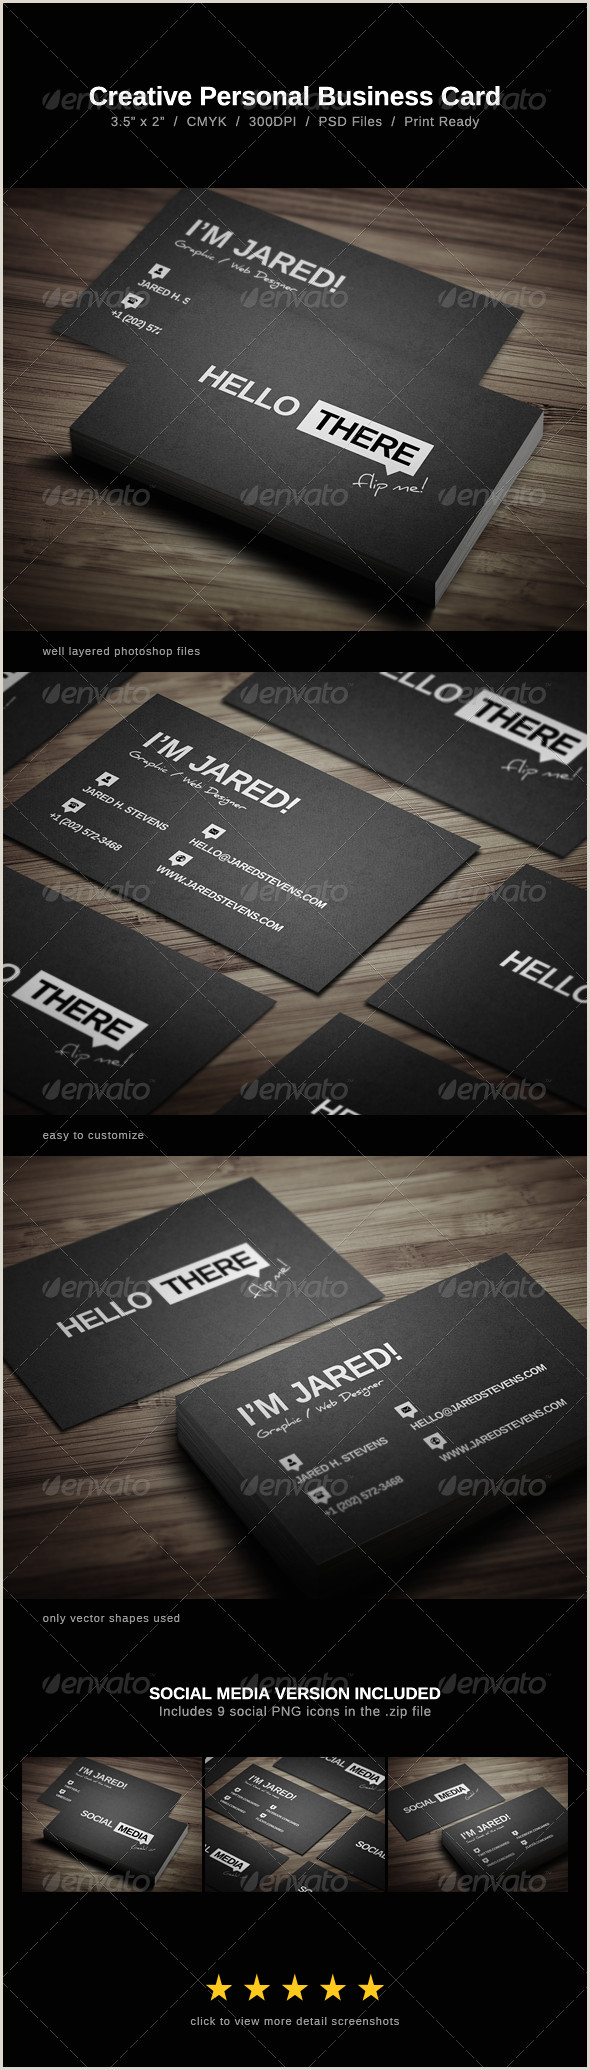 How To Make Personal Business Cards Personal Business Card Templates & Designs From Graphicriver